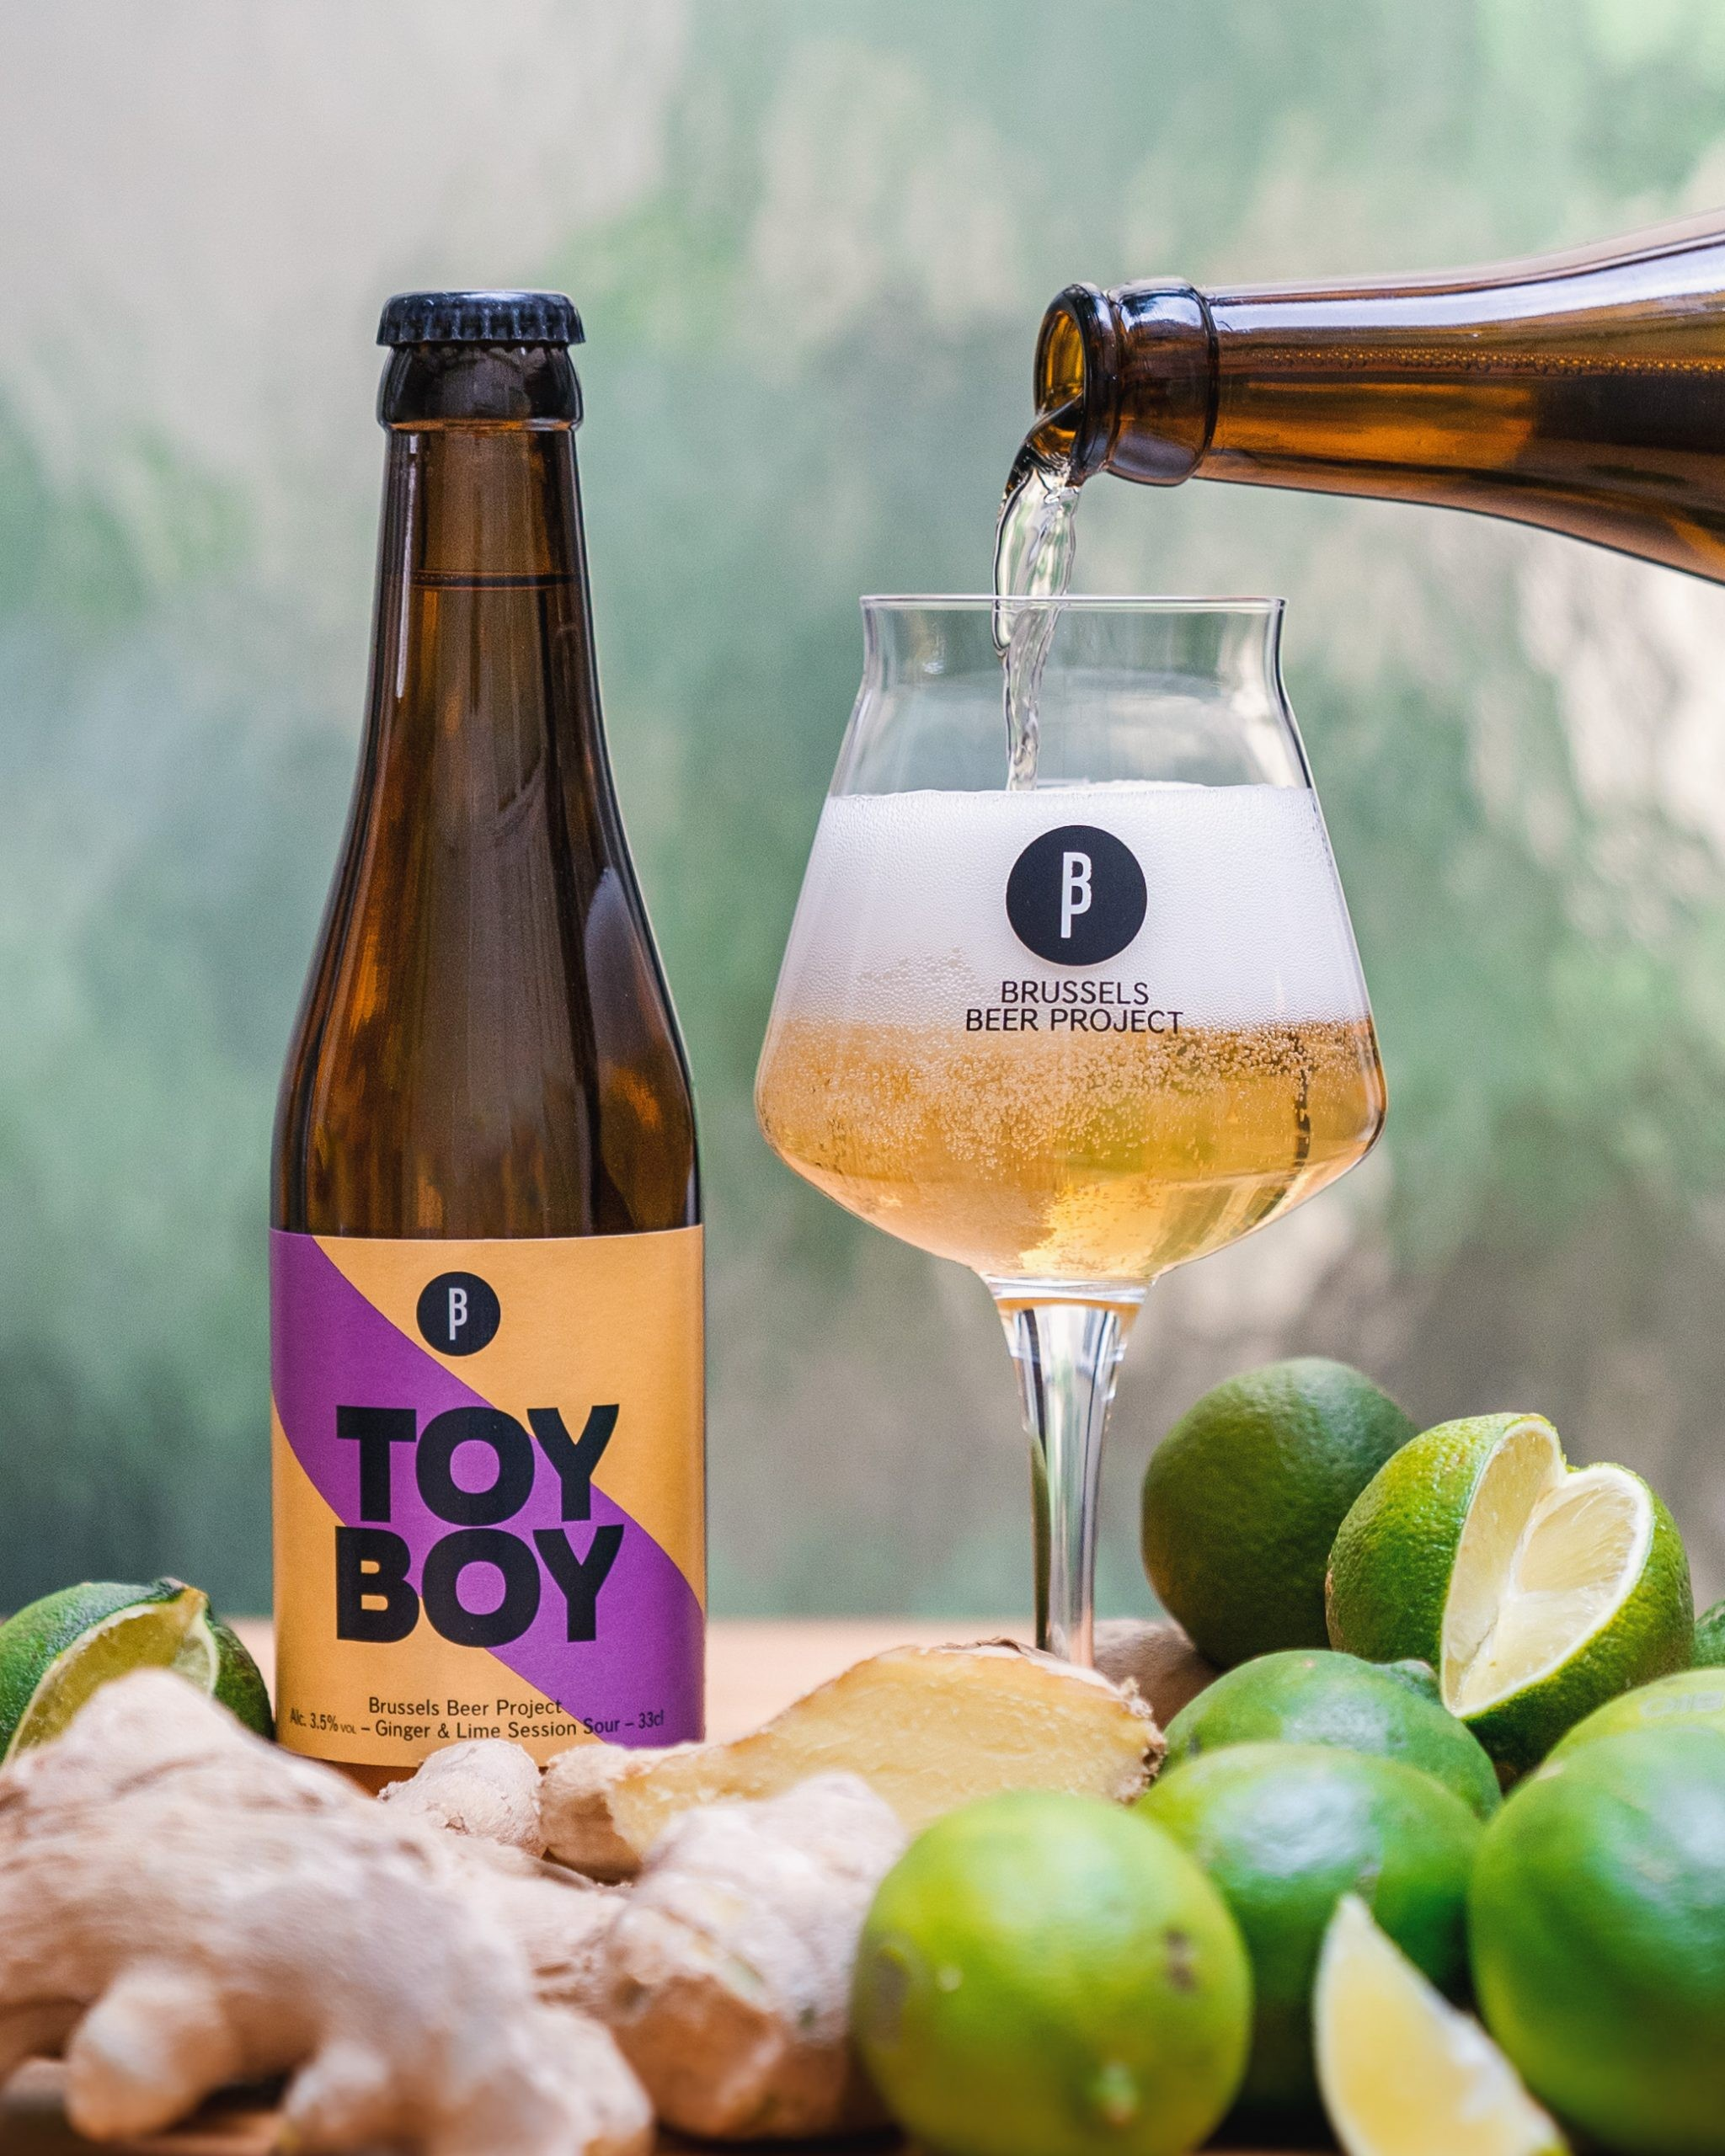 TOY BOY BRUSSELS BEER PROJECT